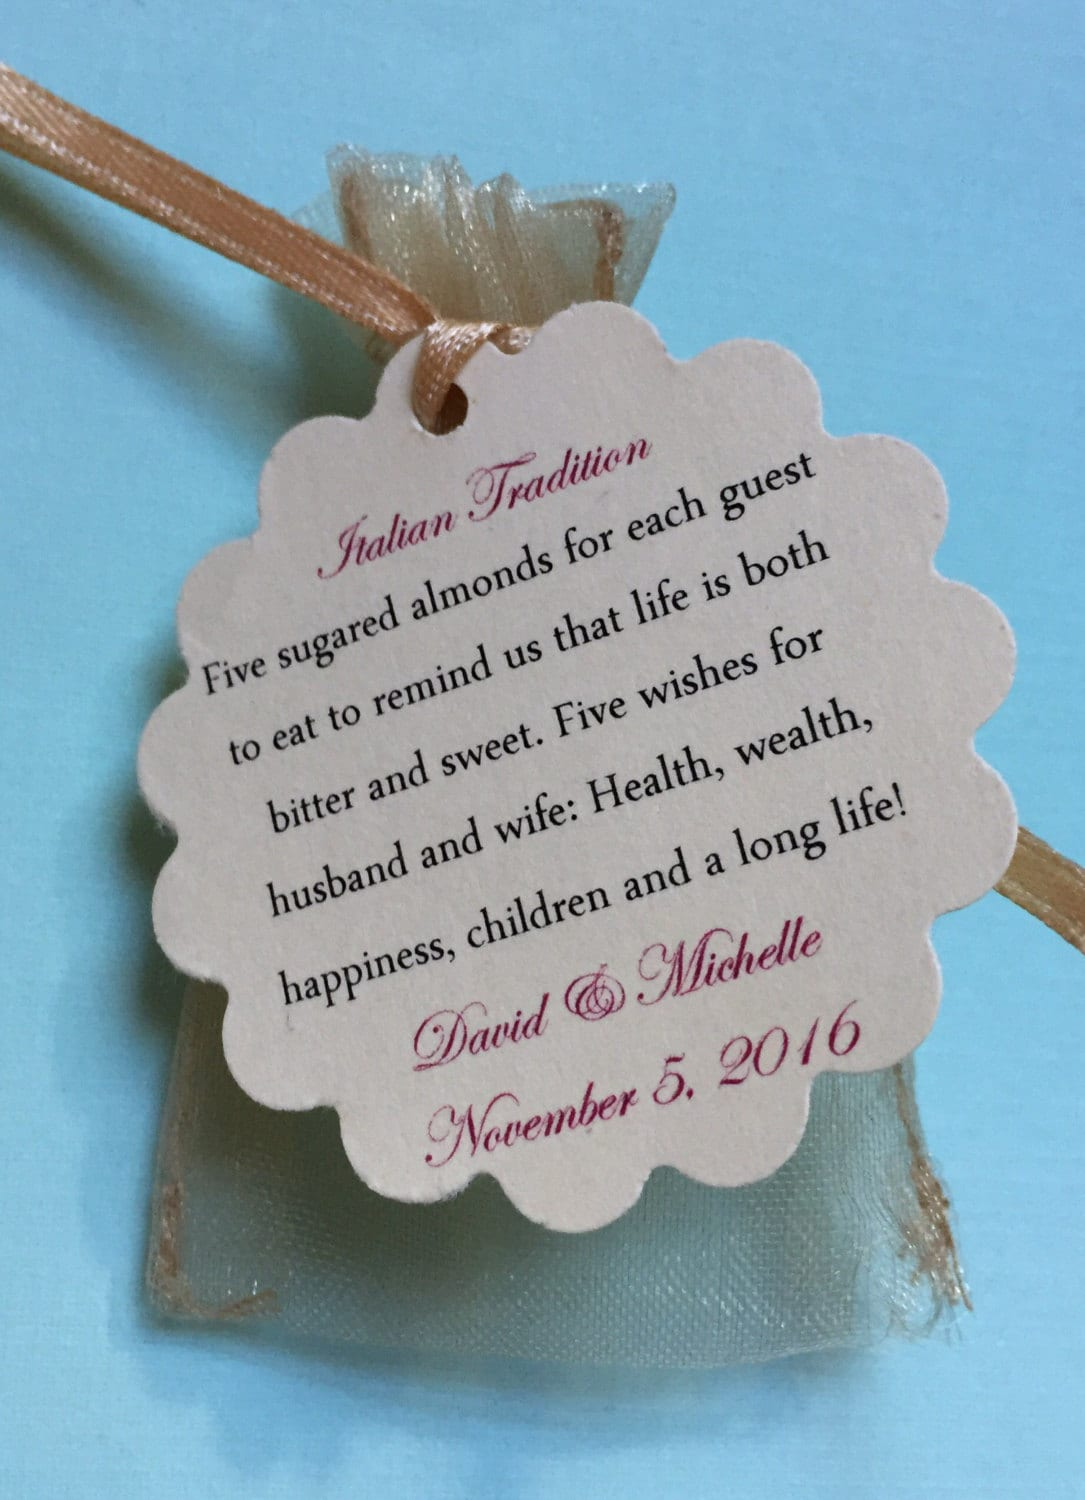 Jordan Almond Wedding 5 Wishes Poem Customized Favor Tag And